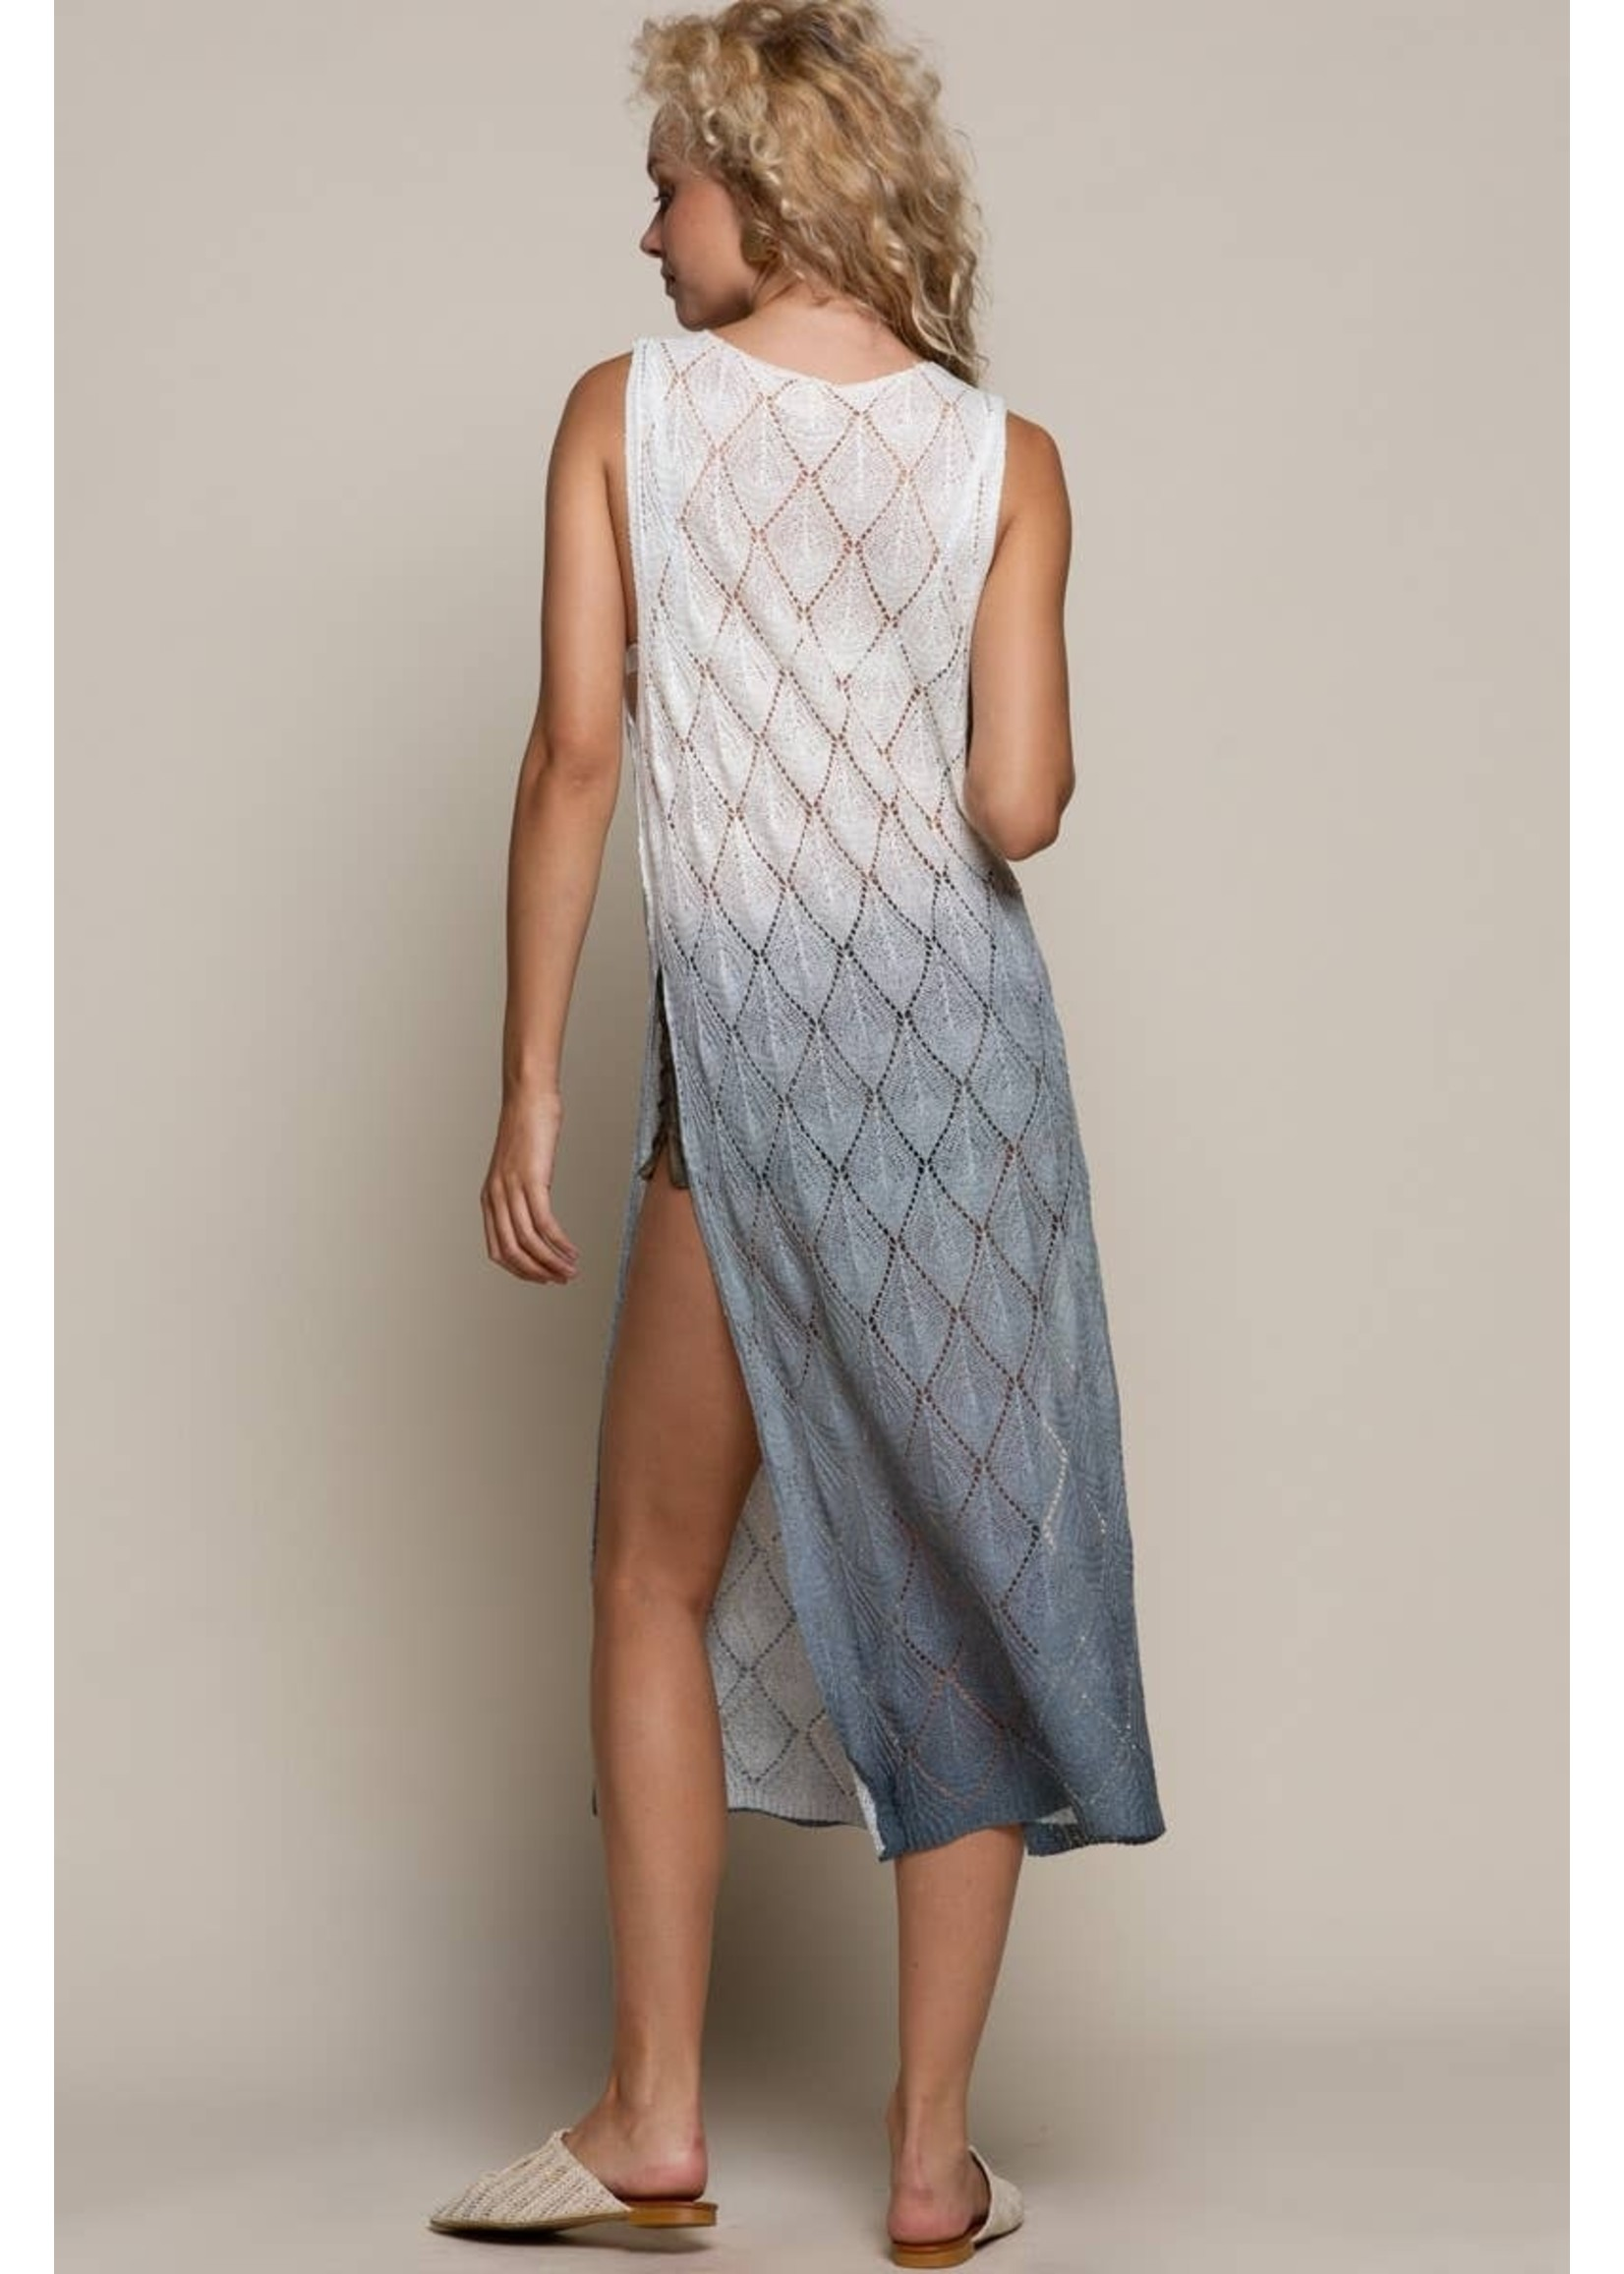 POL Lace Beach Cover Up